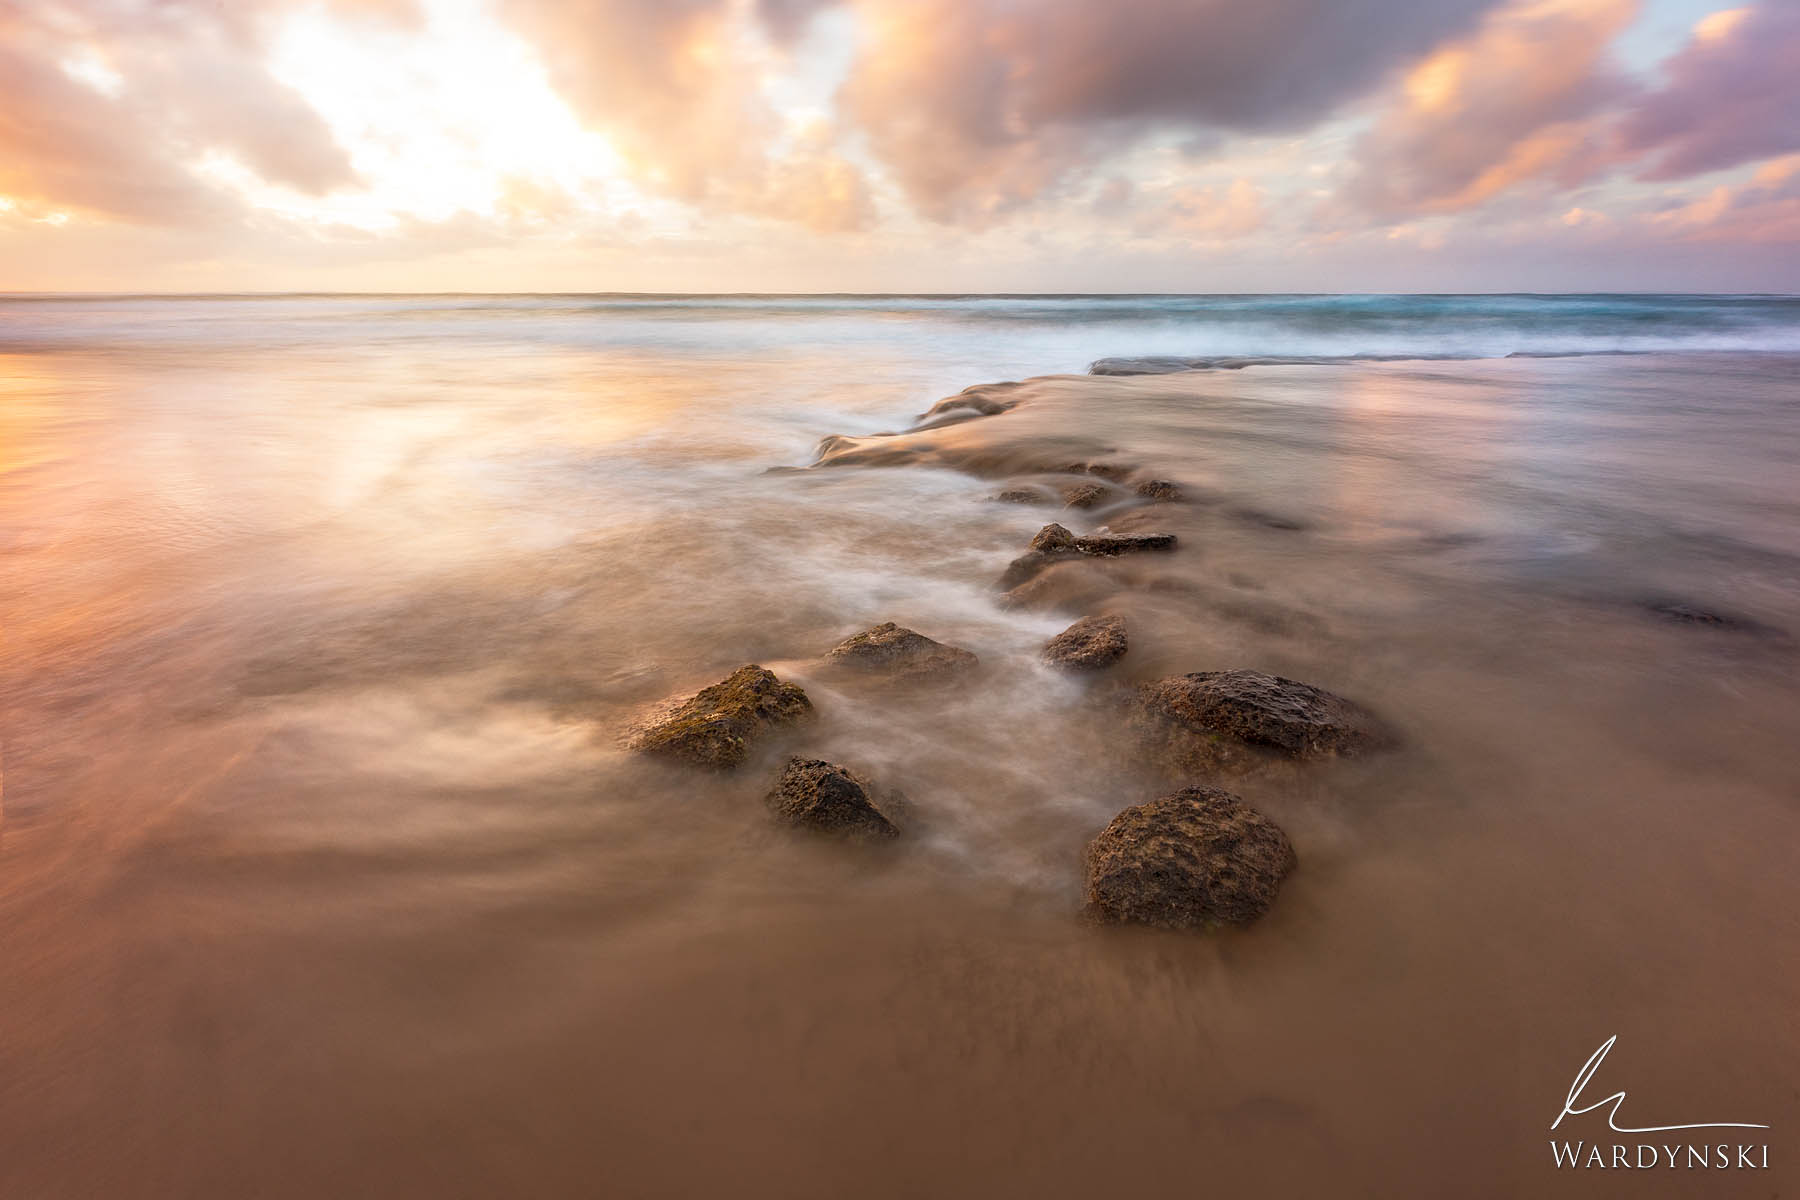 Fine Art Print | Limited Edition of 50  The pastel colors of sunrise are reflected in the warm waters of Hawaii as the gentle...